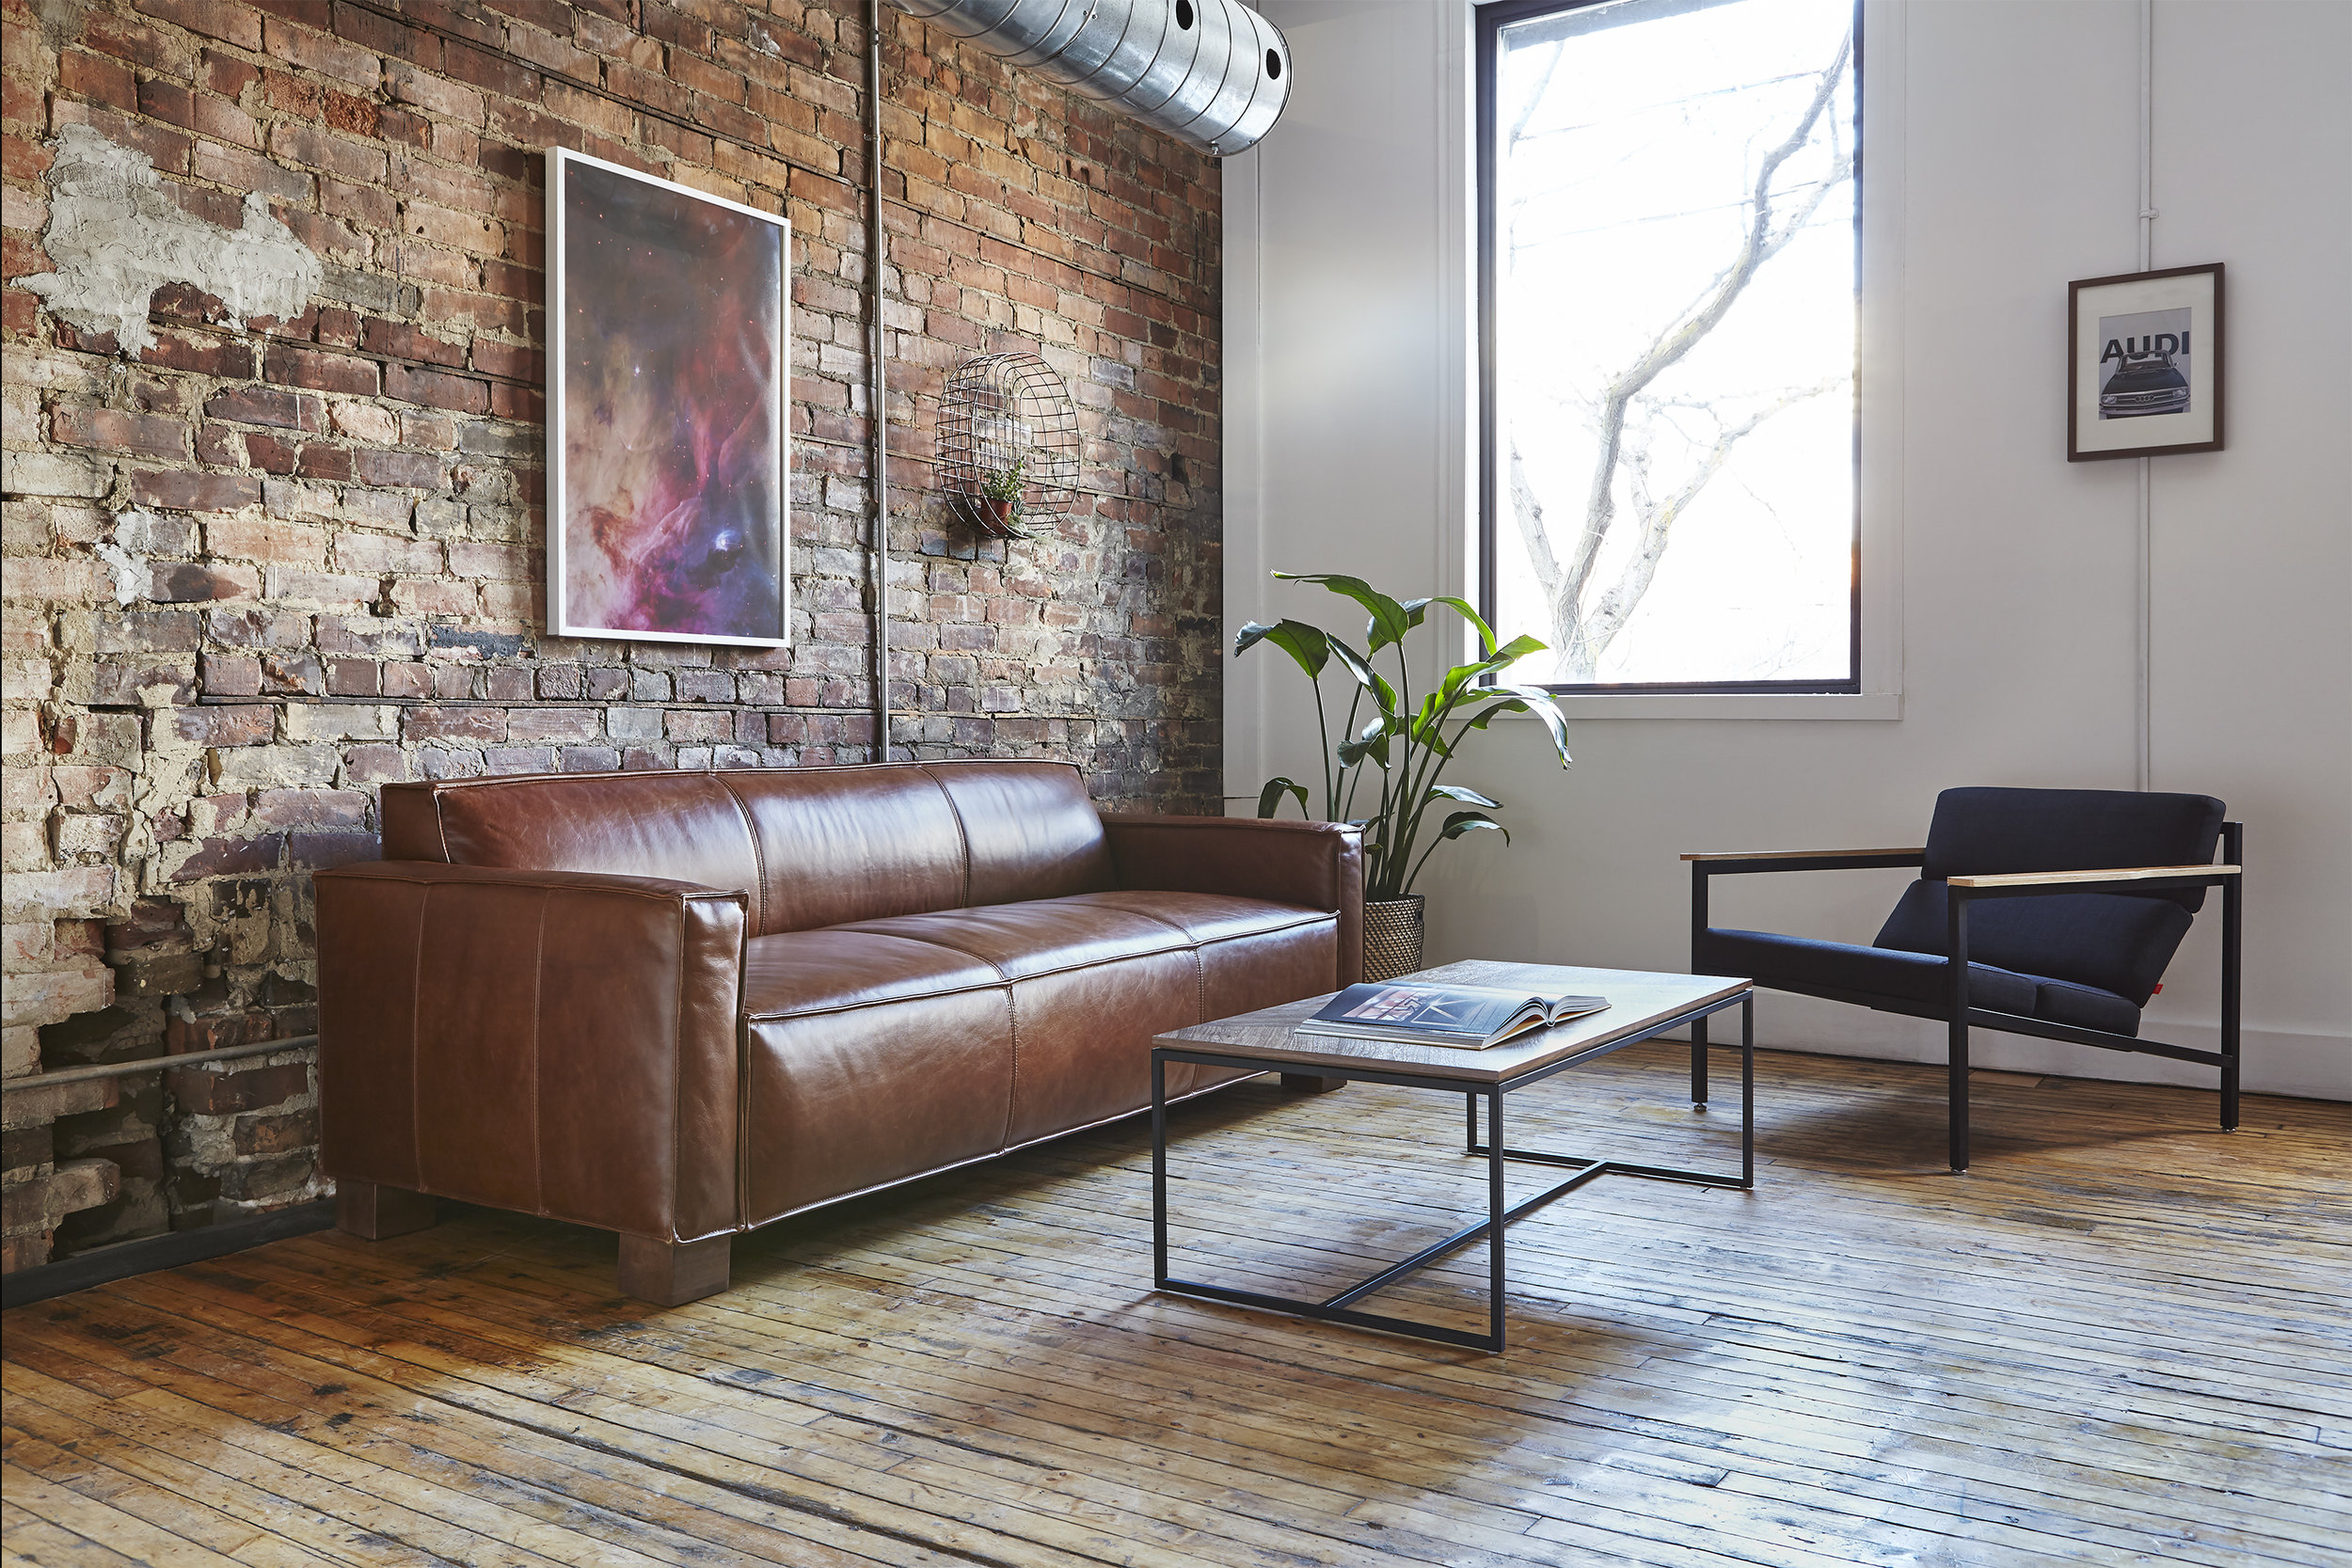 Cabot Sofa - Saddle Brown Leather - L01.jpg